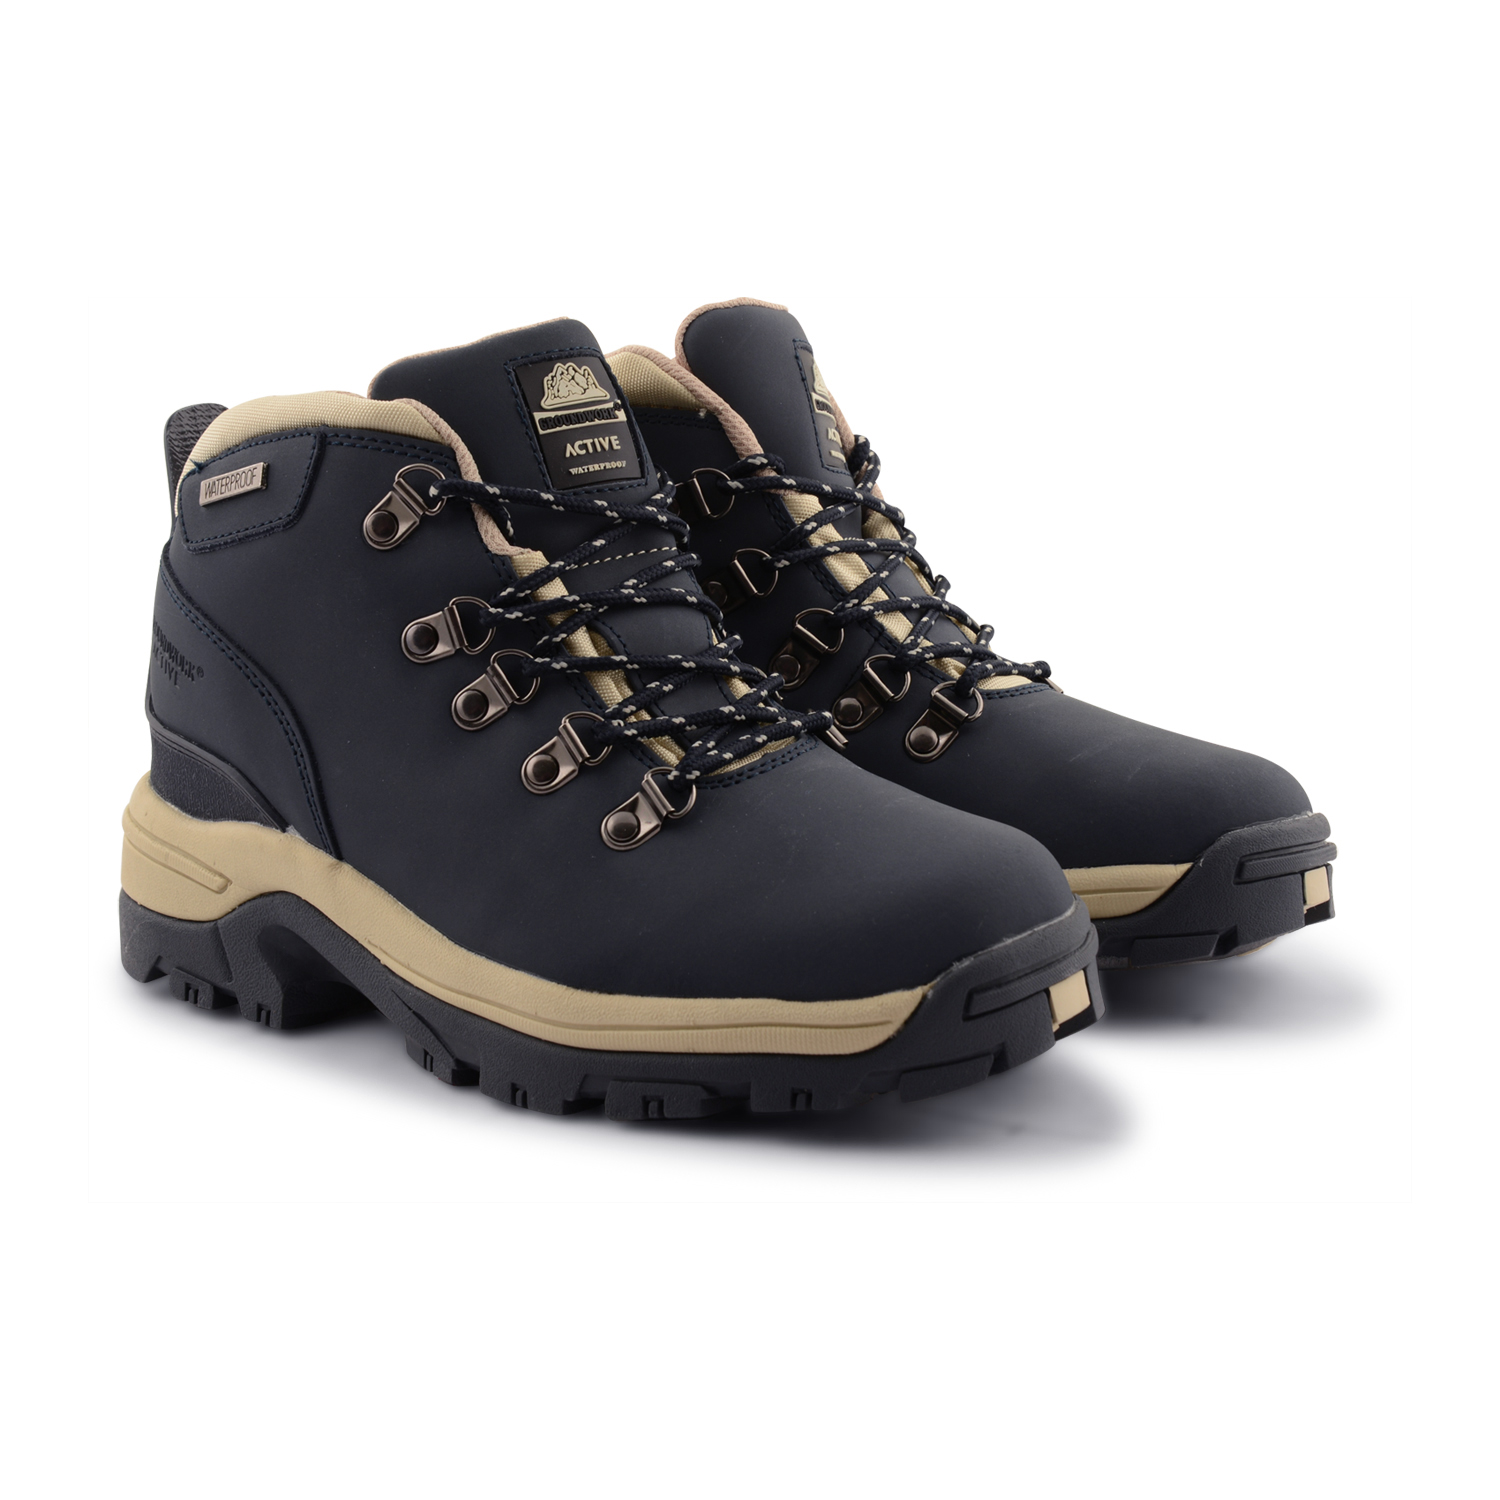 womens walking boots womens-hiking-boots-ladies-leather-groundwork-active-waterproof- HGRHFBB